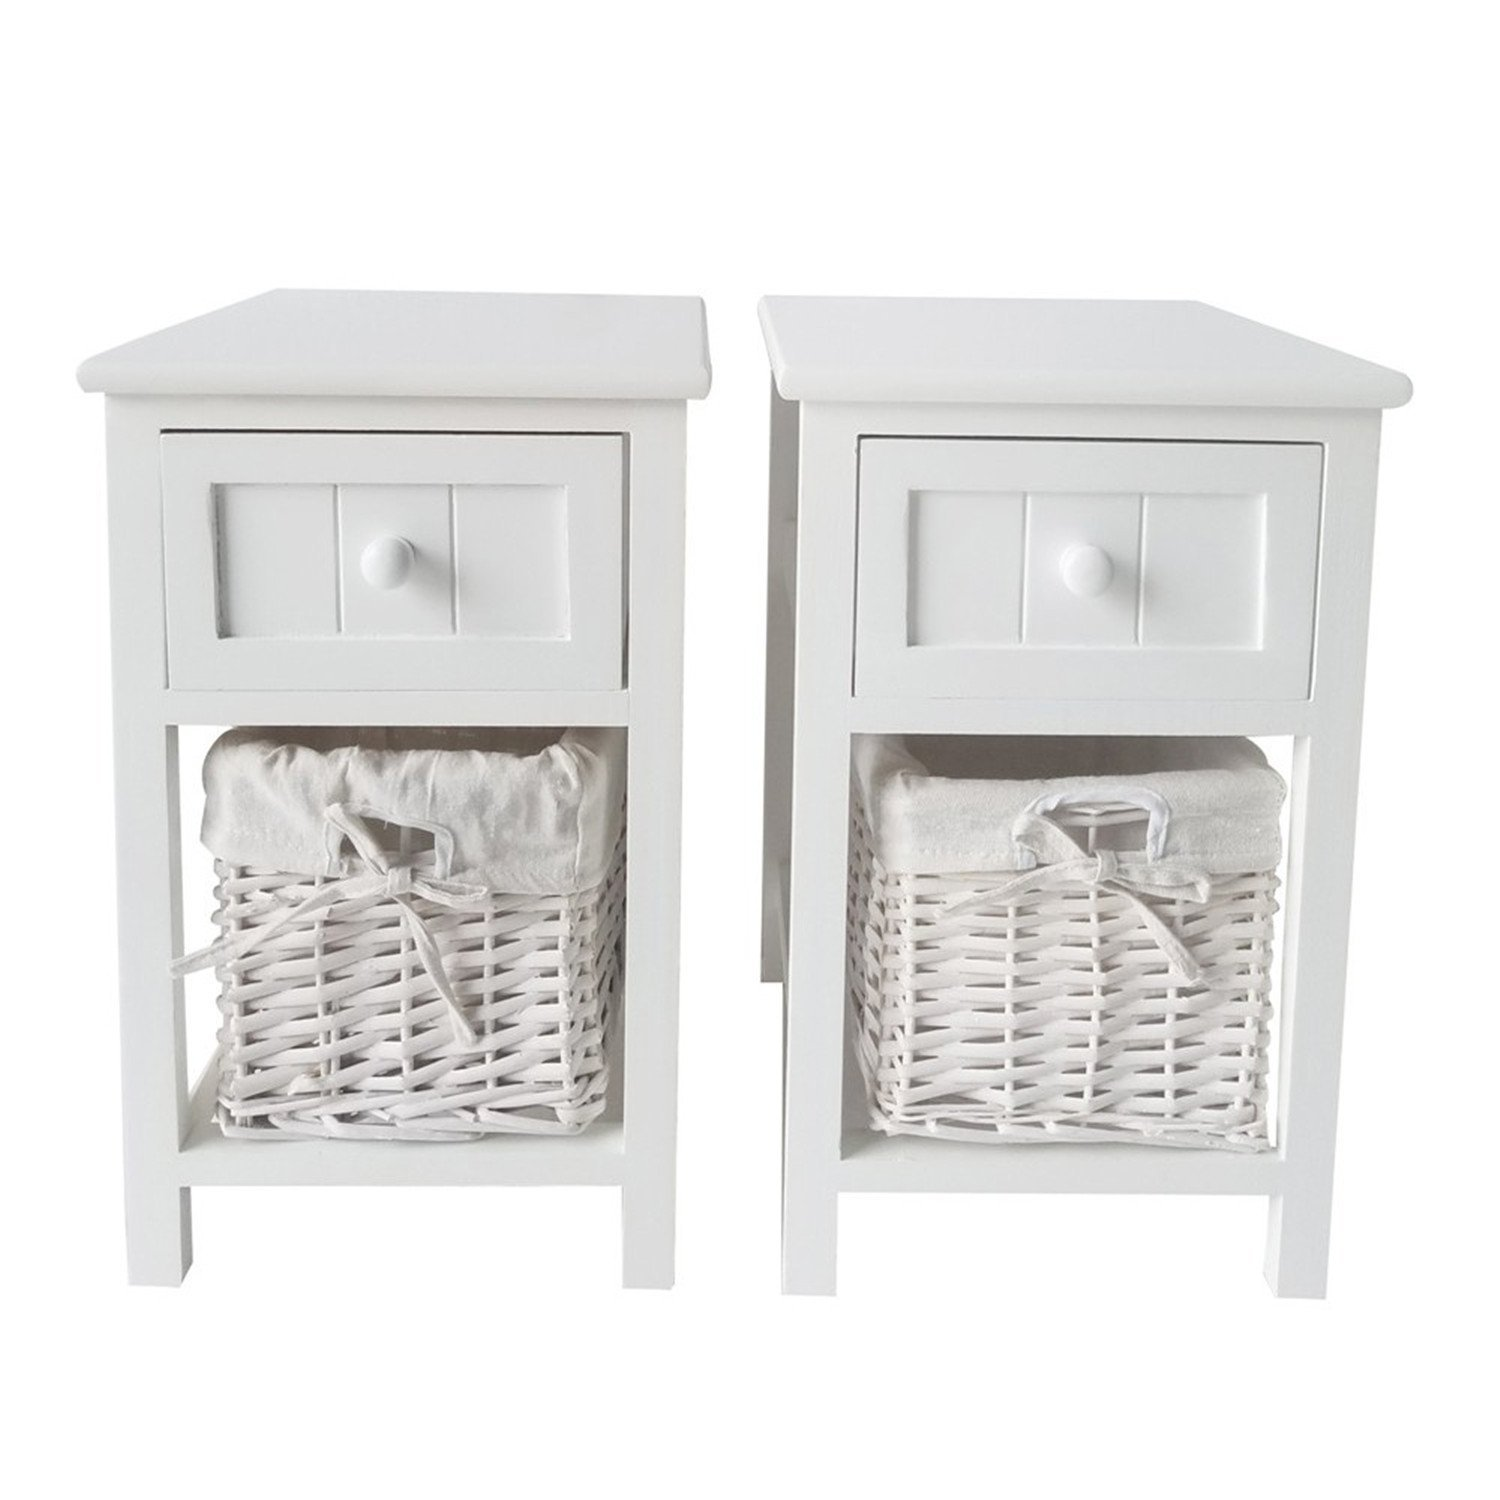 SHUTAO 2pcs Country Style Two-tier Night Tables with Drawer and Basket White